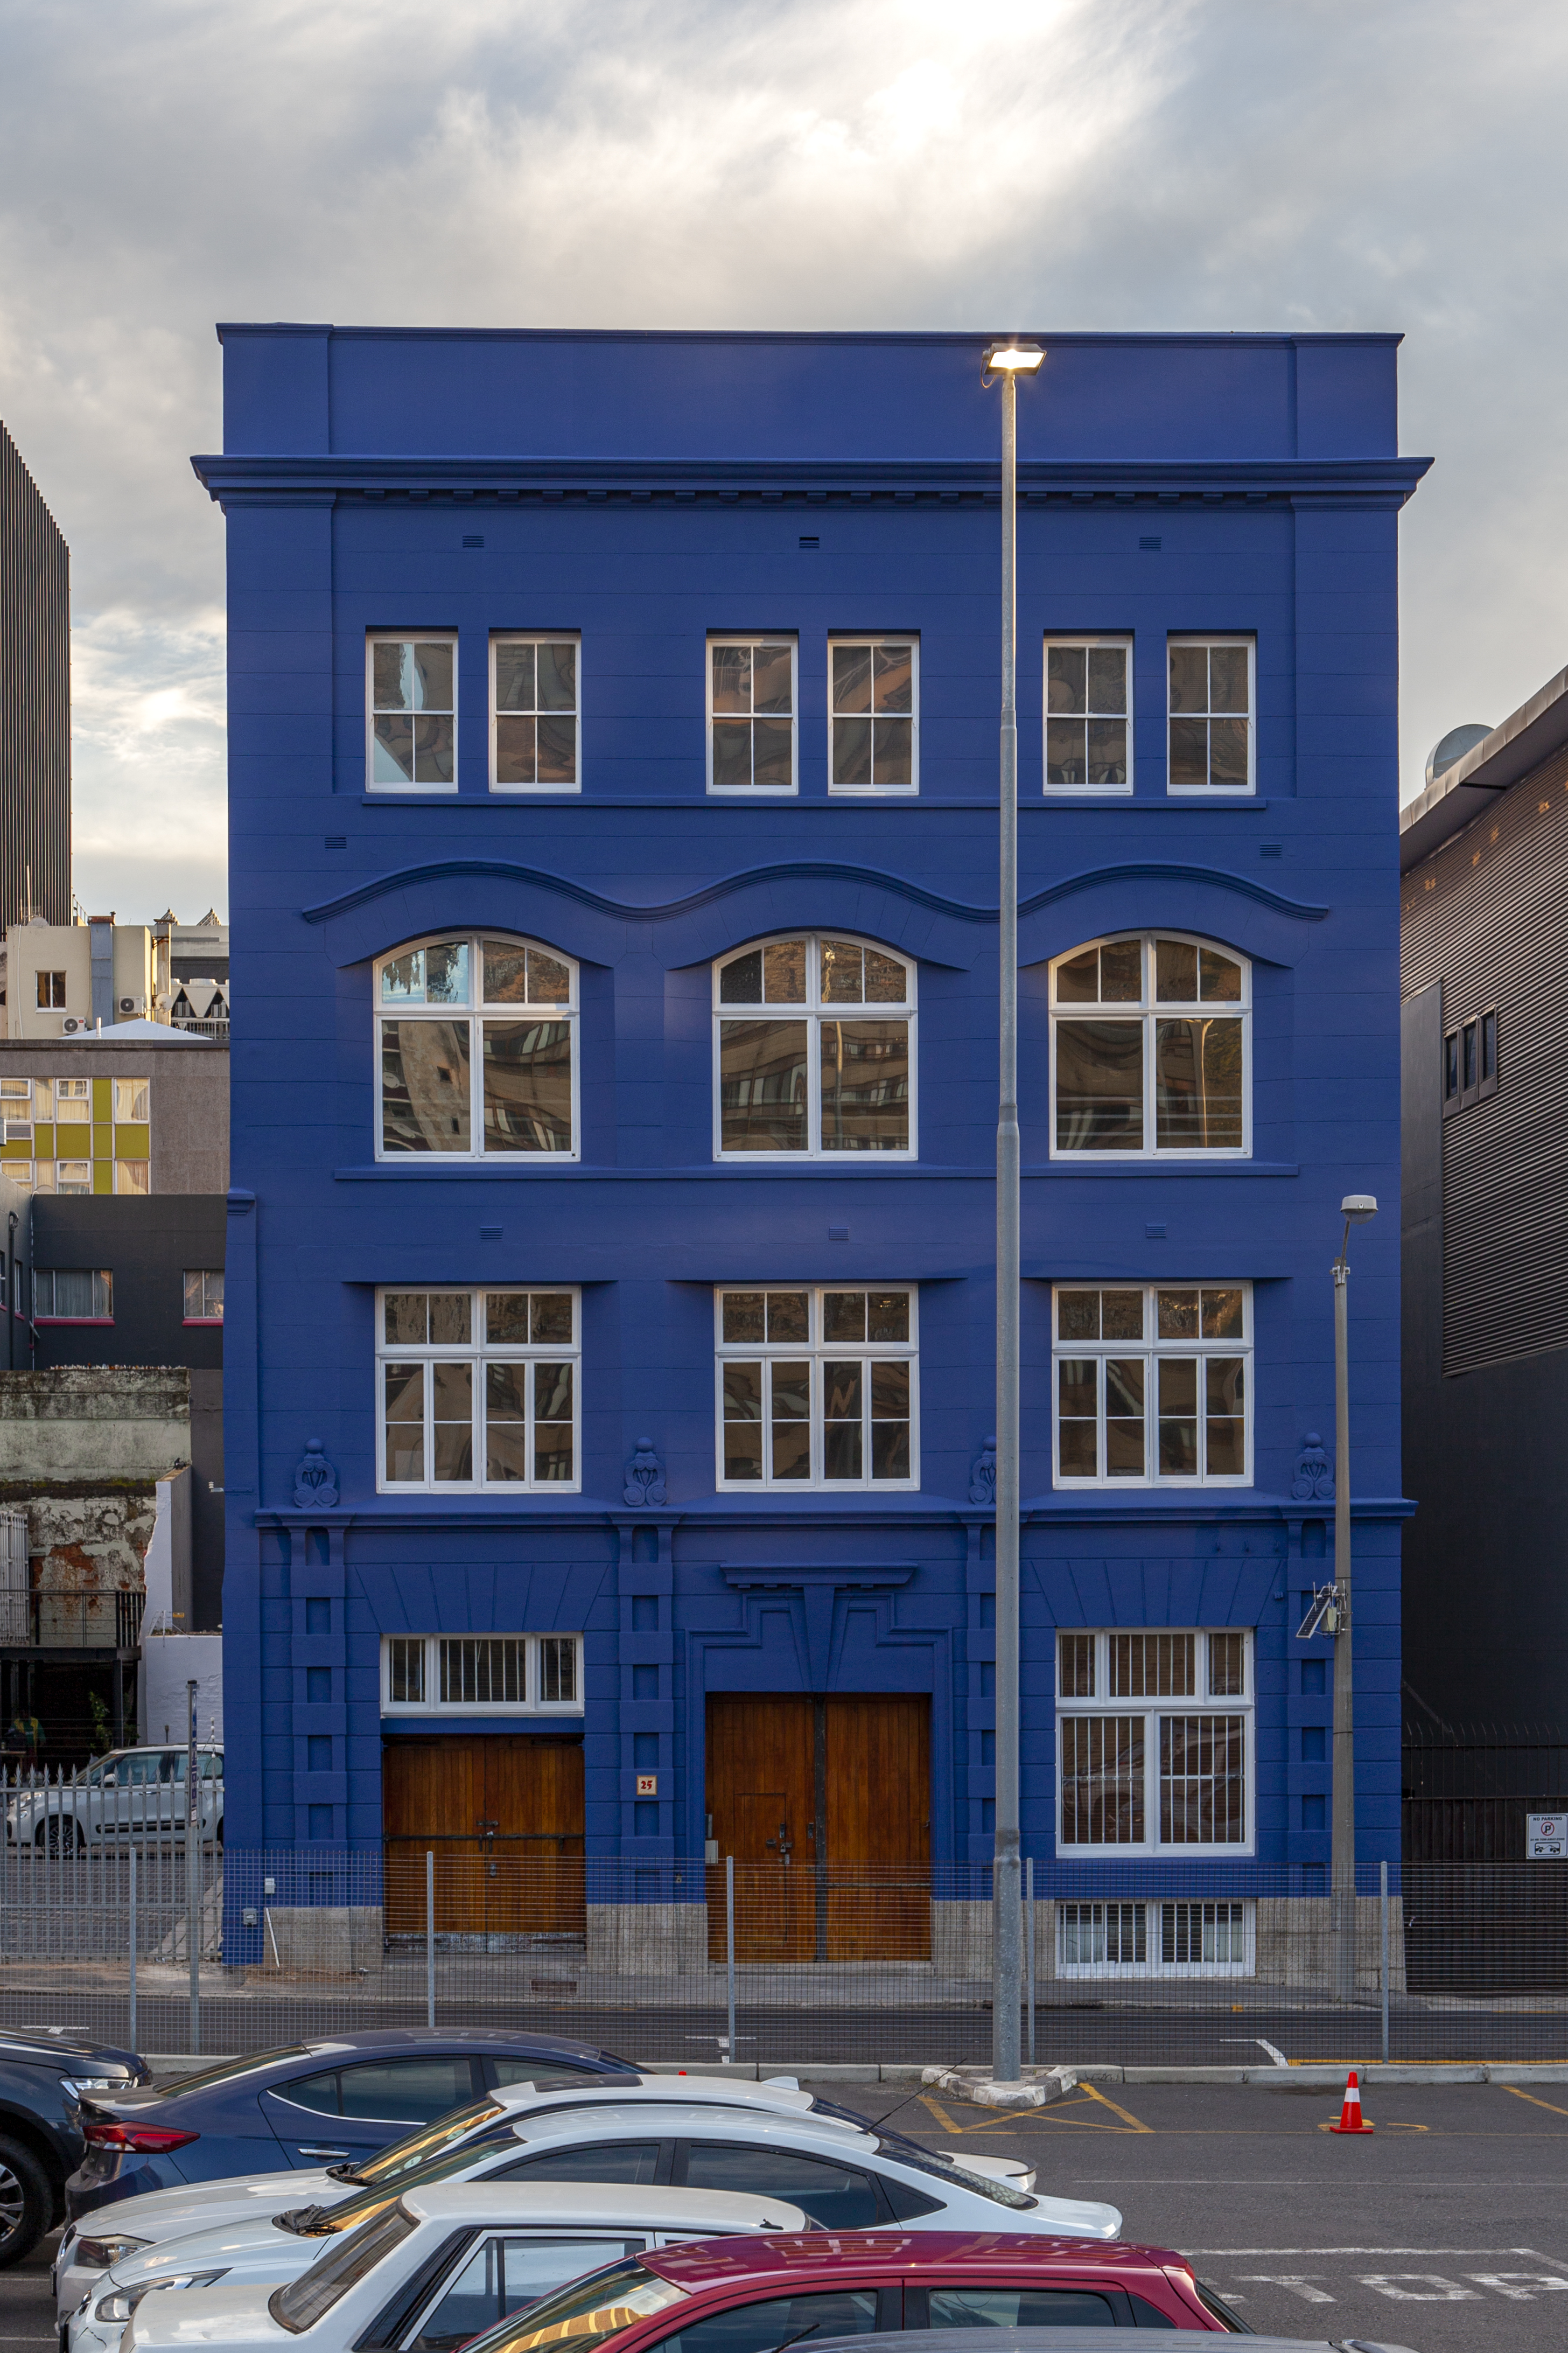 Union House redecoration/painting by Indawo, Cape Town